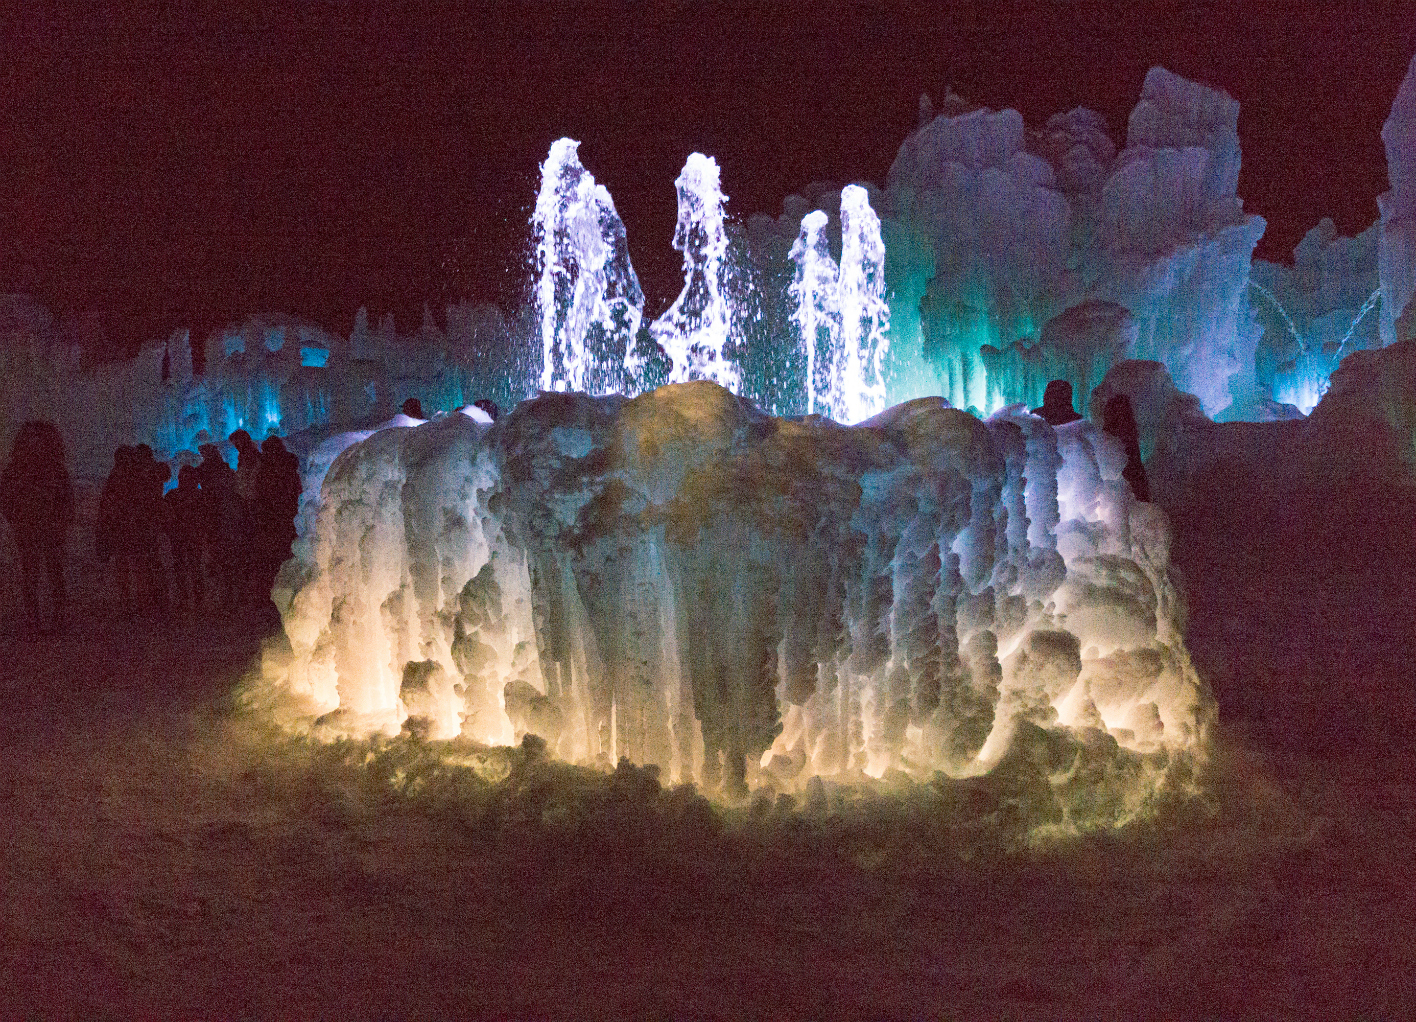 midway ice castle fountain